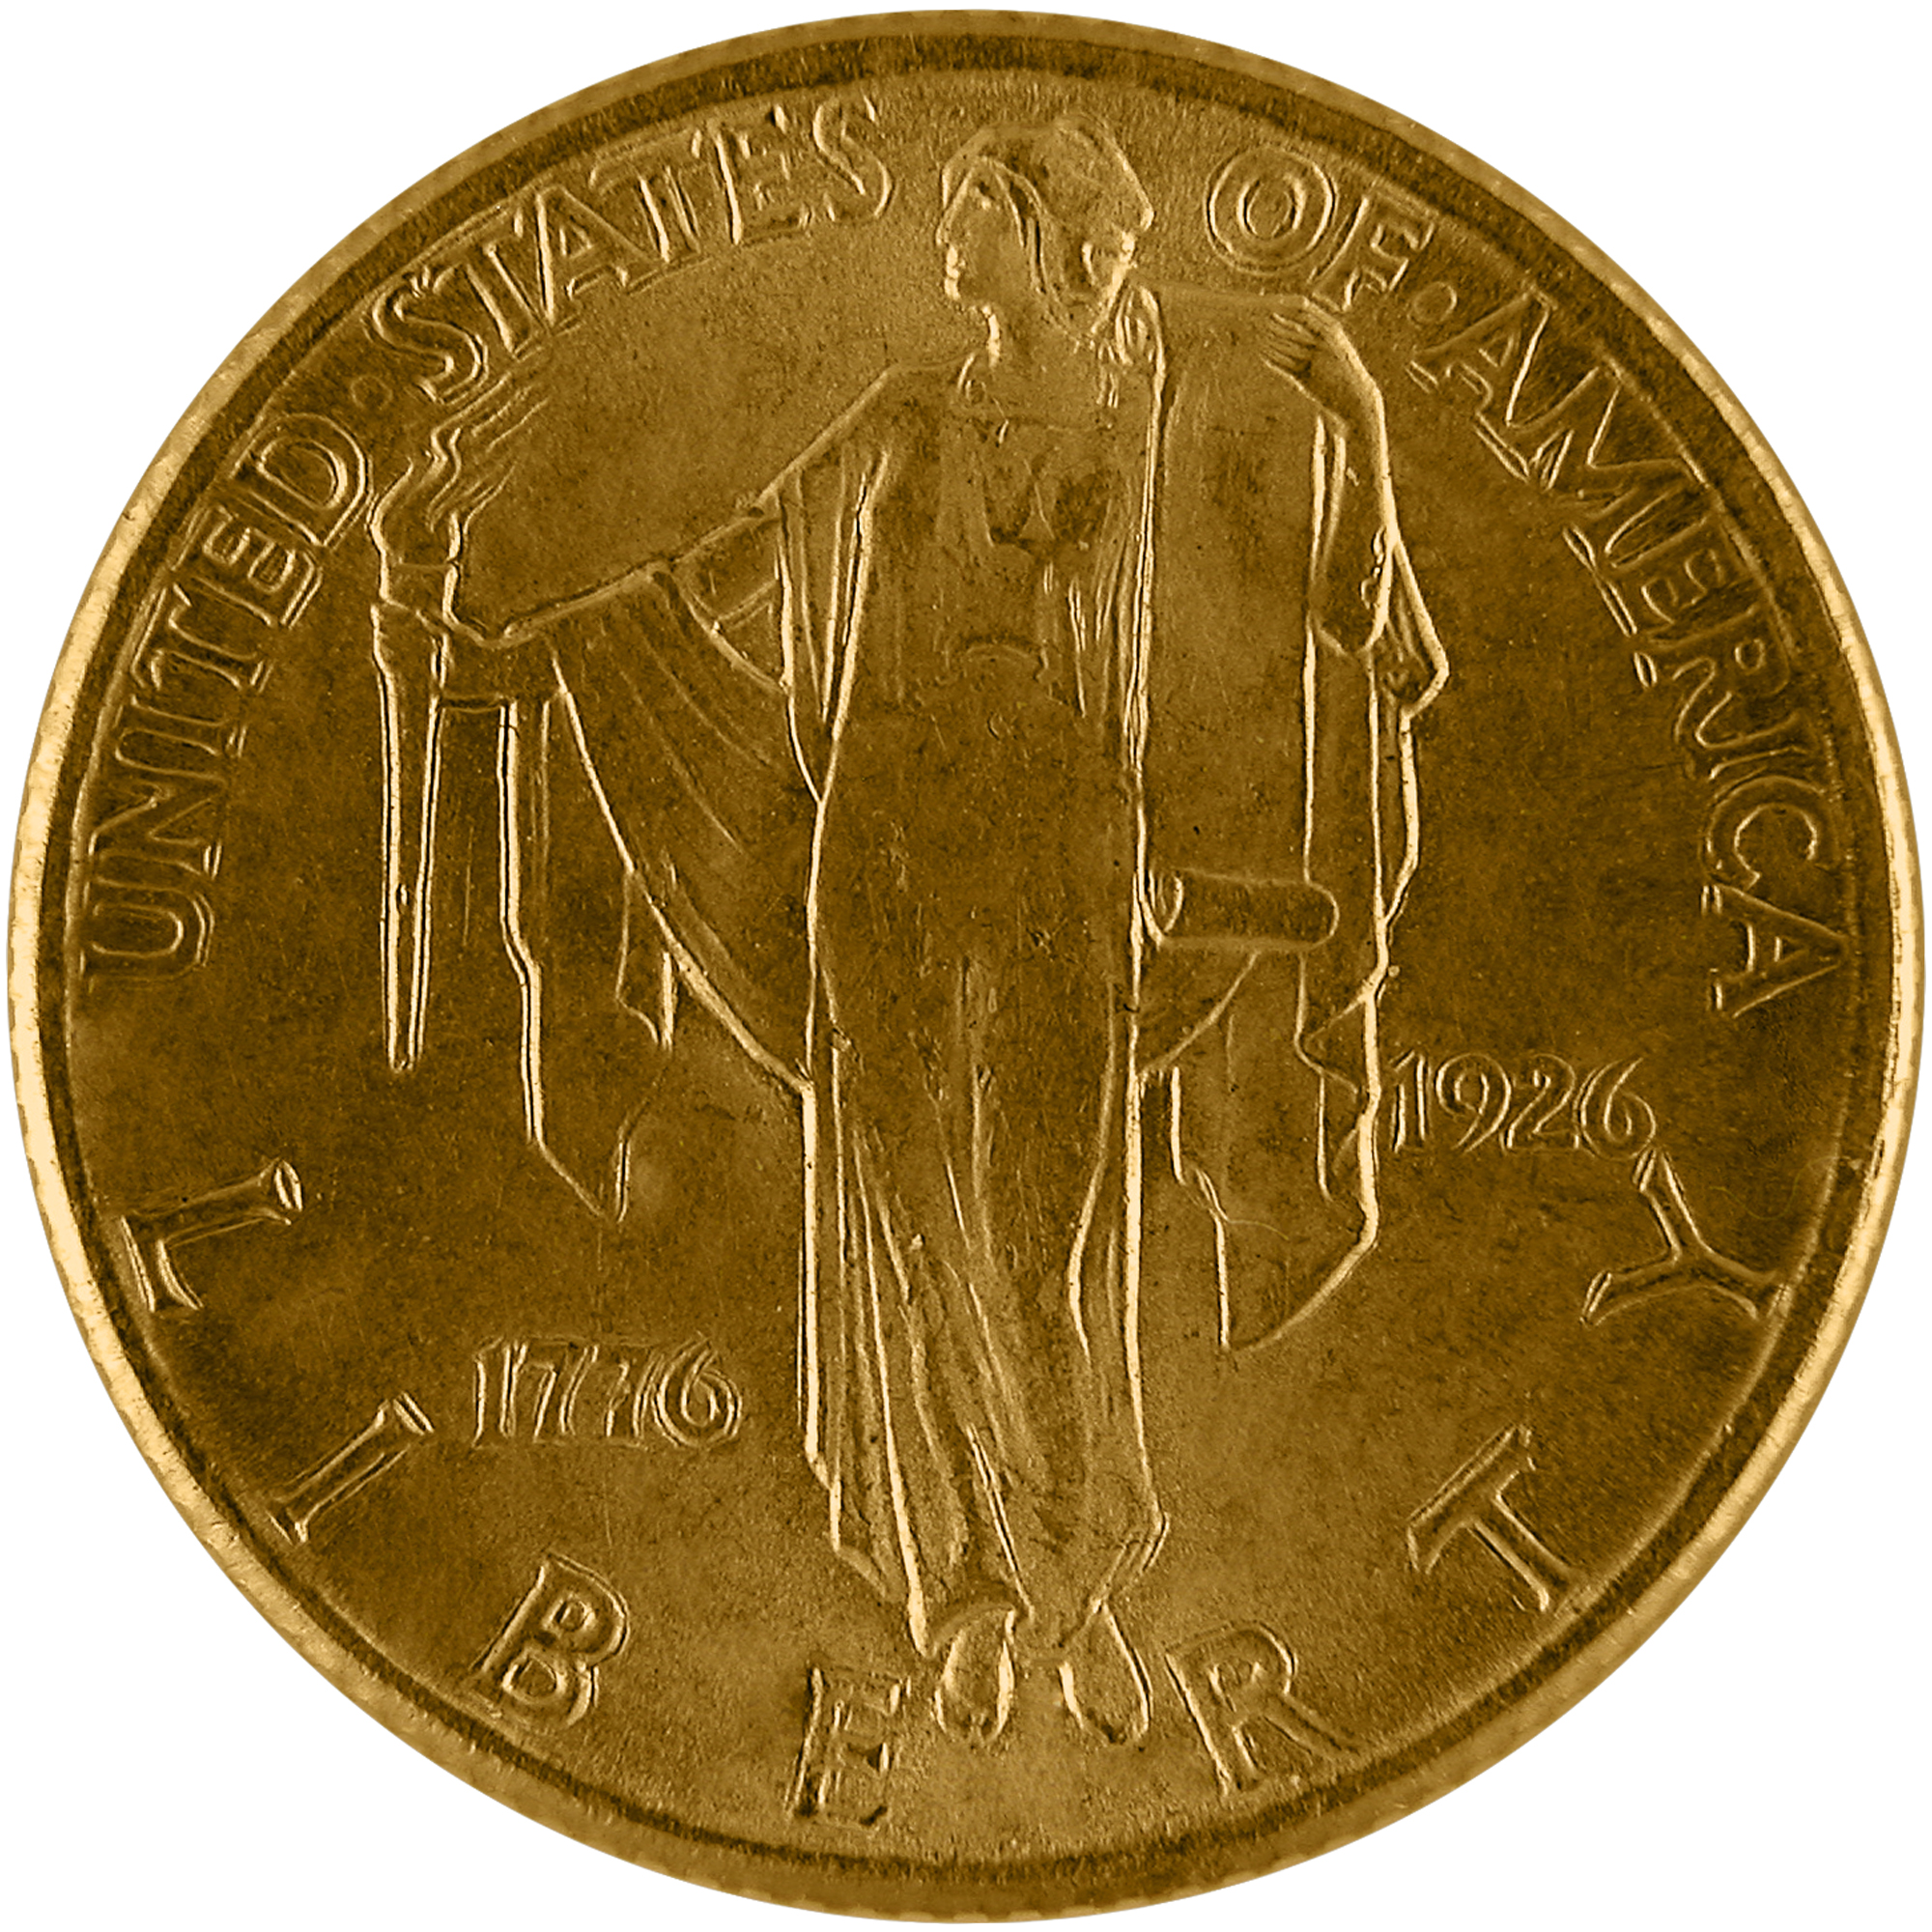 1926 Sesquicentennial American Independence Commemorative Gold Quarter Eagle Two And One Half Dollar Coin Obverse